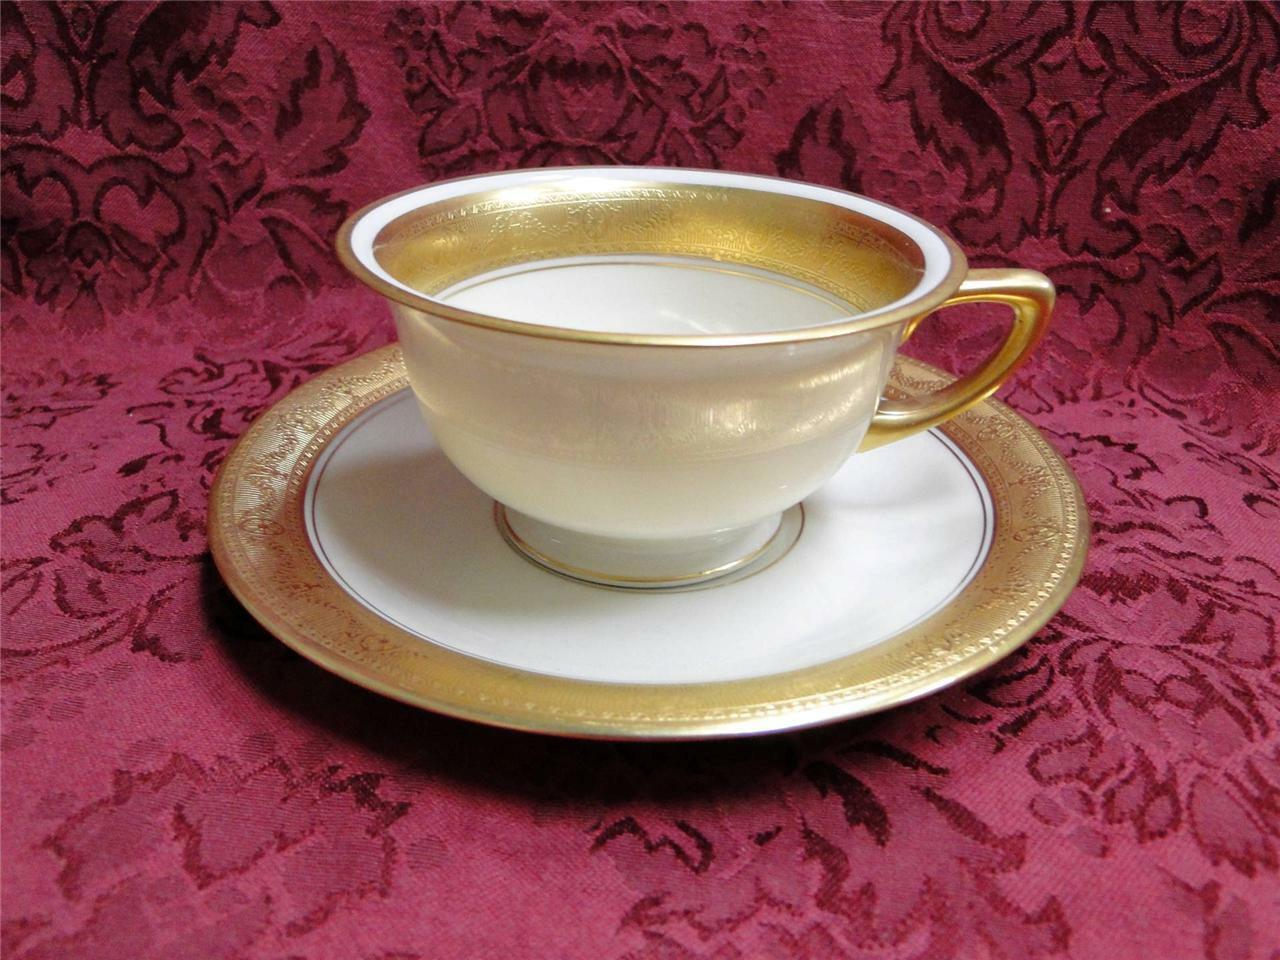 Pickard / Heinrich Pic67, Encrusted Gold Urns & Flowers: Cup & Saucer Set (s)